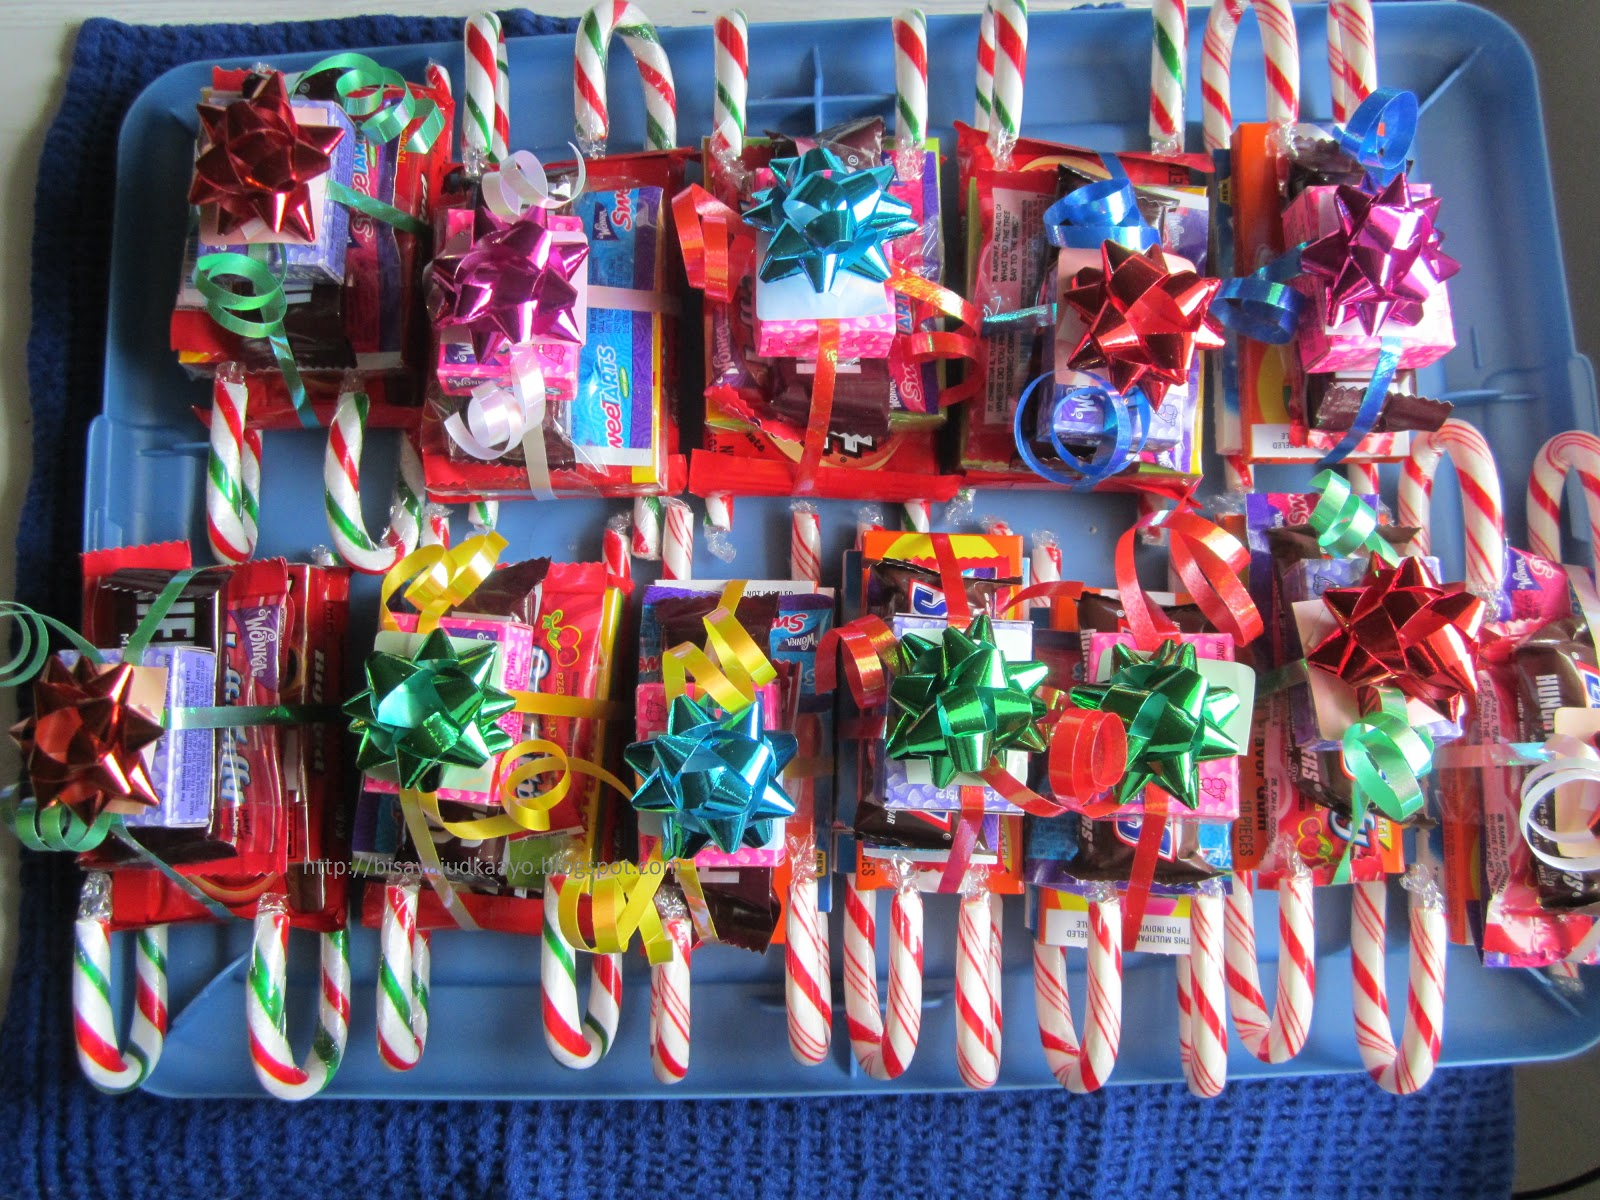 inato lang filipino cuisine and more - Candy Sleighs For Christmas